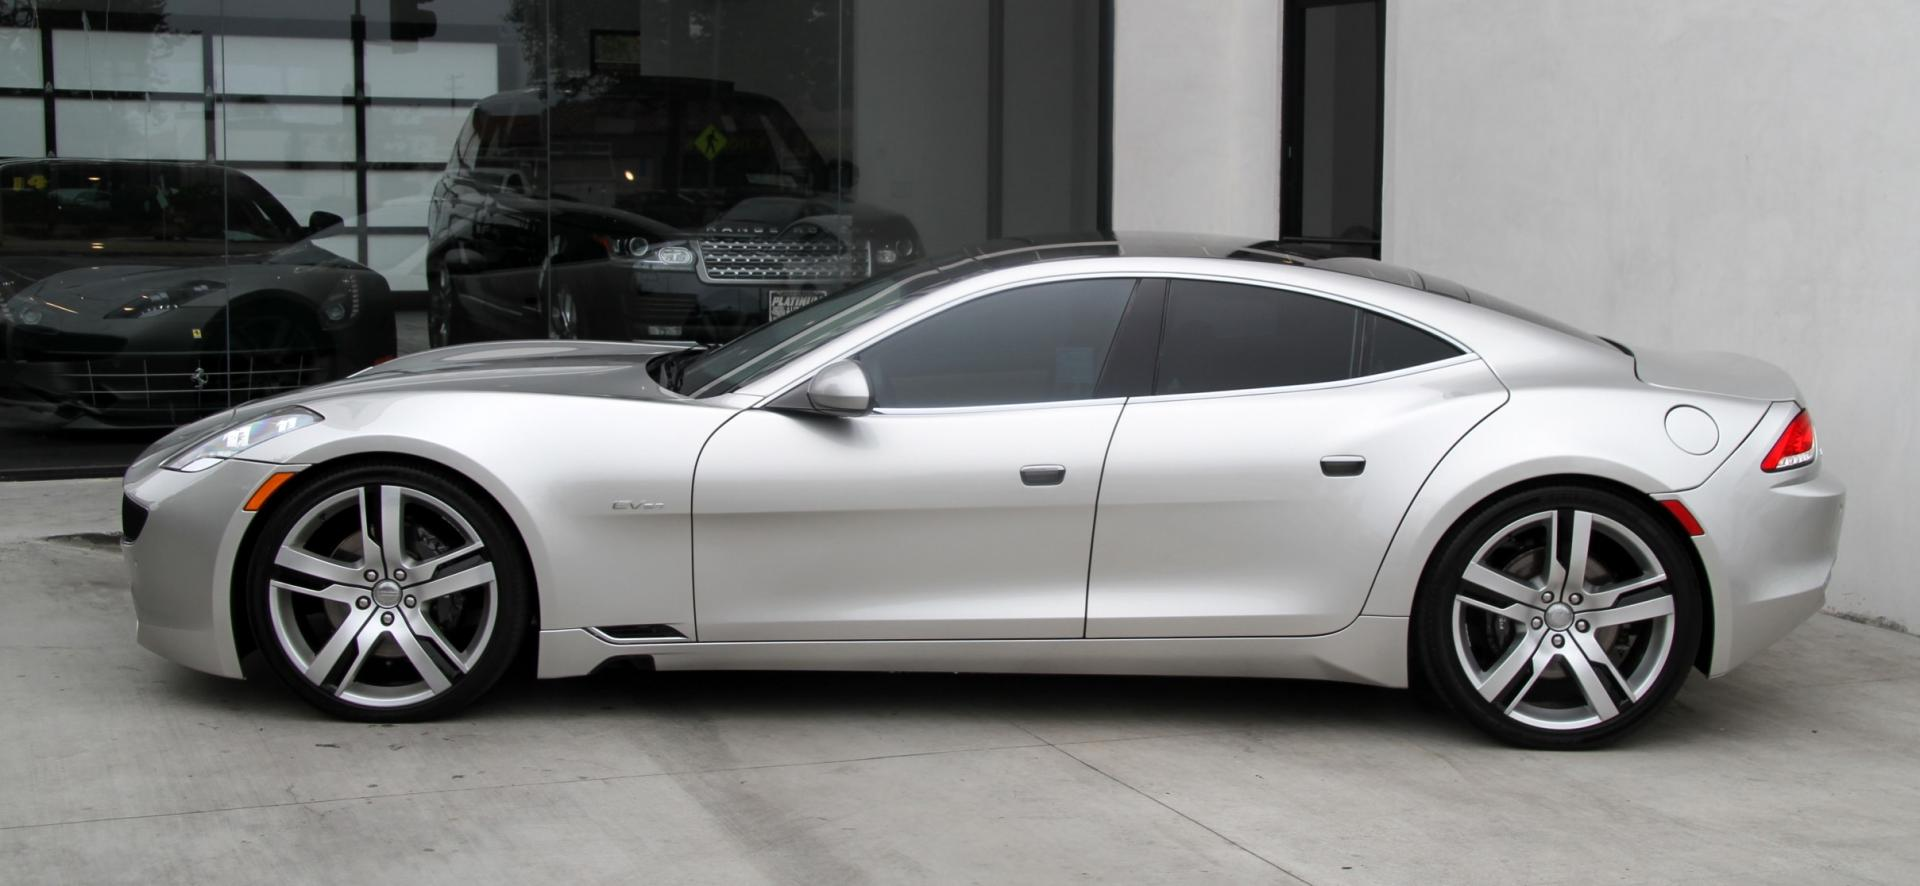 Free Vehicle History Report By Vin >> 2012 Fisker Karma EcoSport ** Signature Edition ** Stock ...